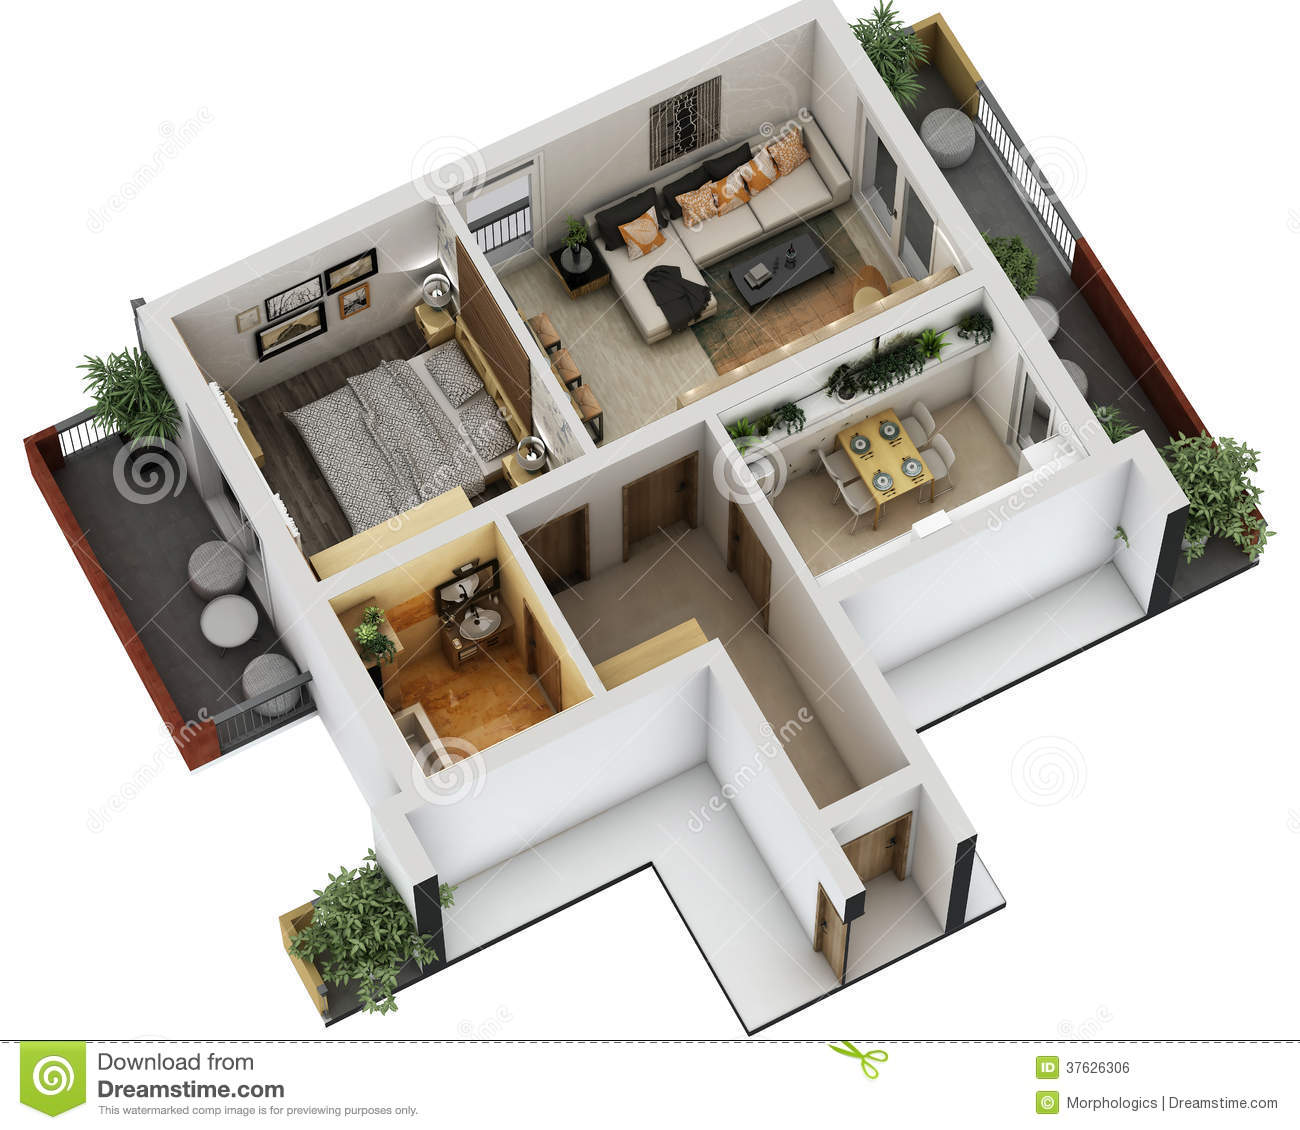 3d floor plan royalty free stock image image 37626306 for 3d floor plan free